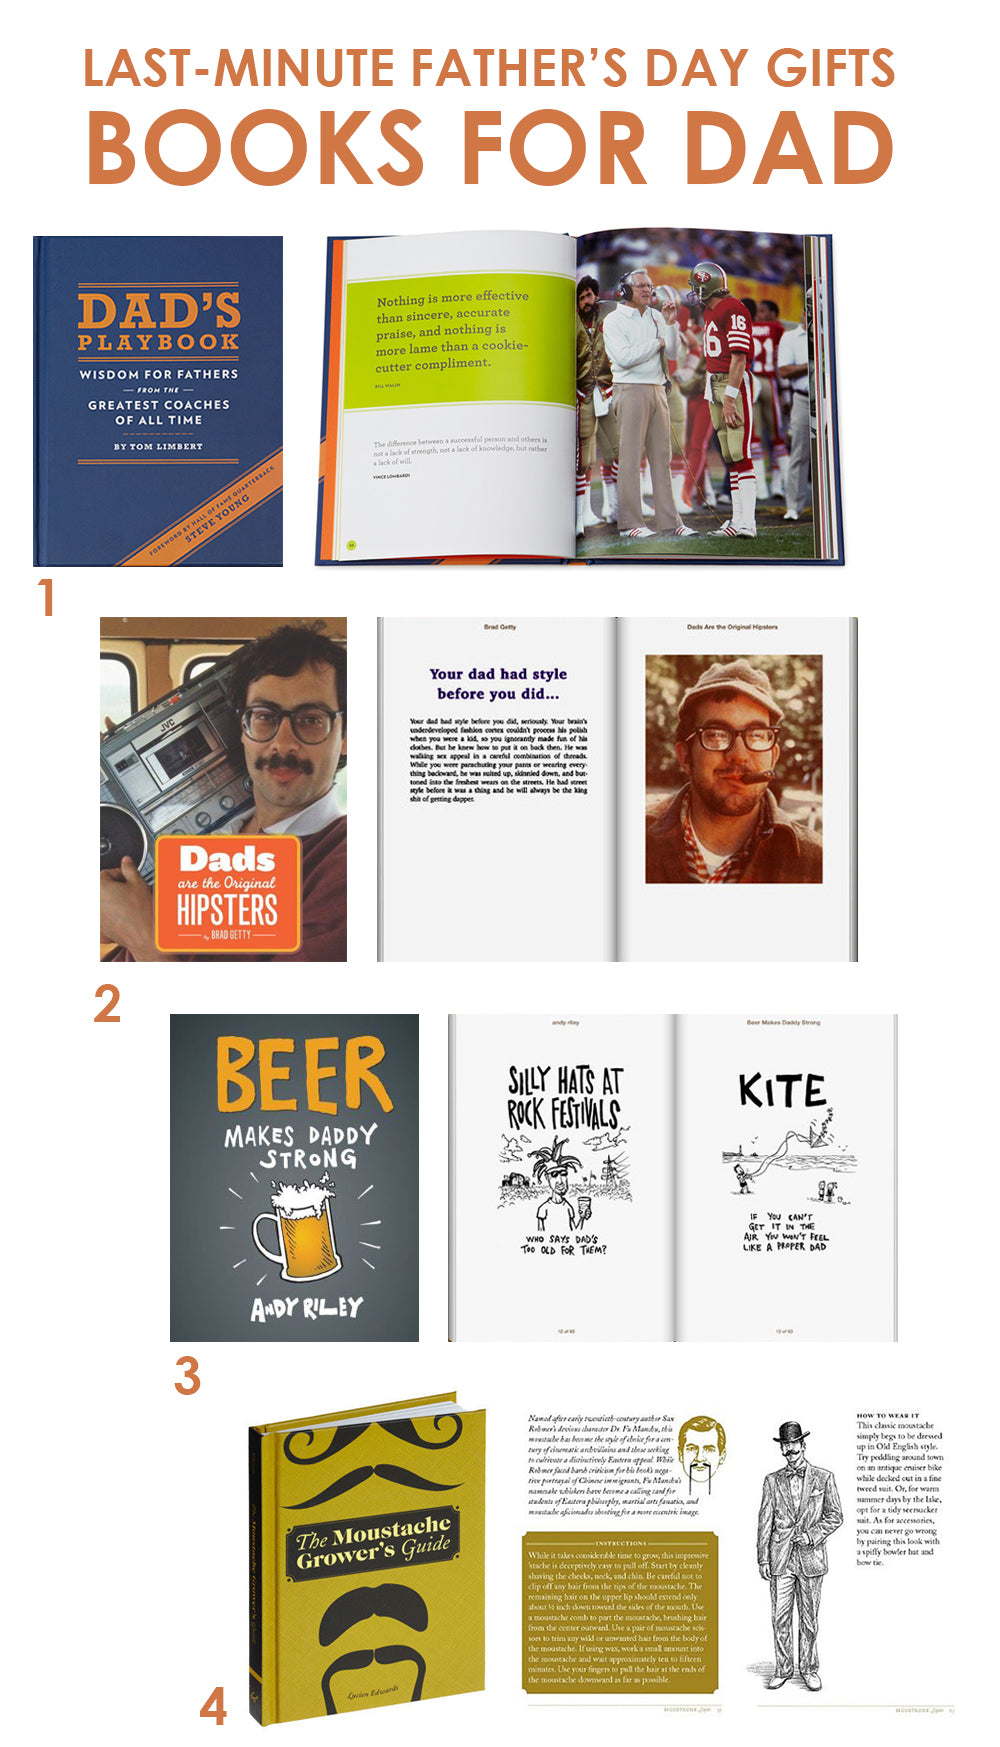 c0cc9f95 Dad's Playbook: Wisdom for Fathers from the Greatest Coaches of All Time.  With a title like that, need we say more? Written by author and parenting  expert ...